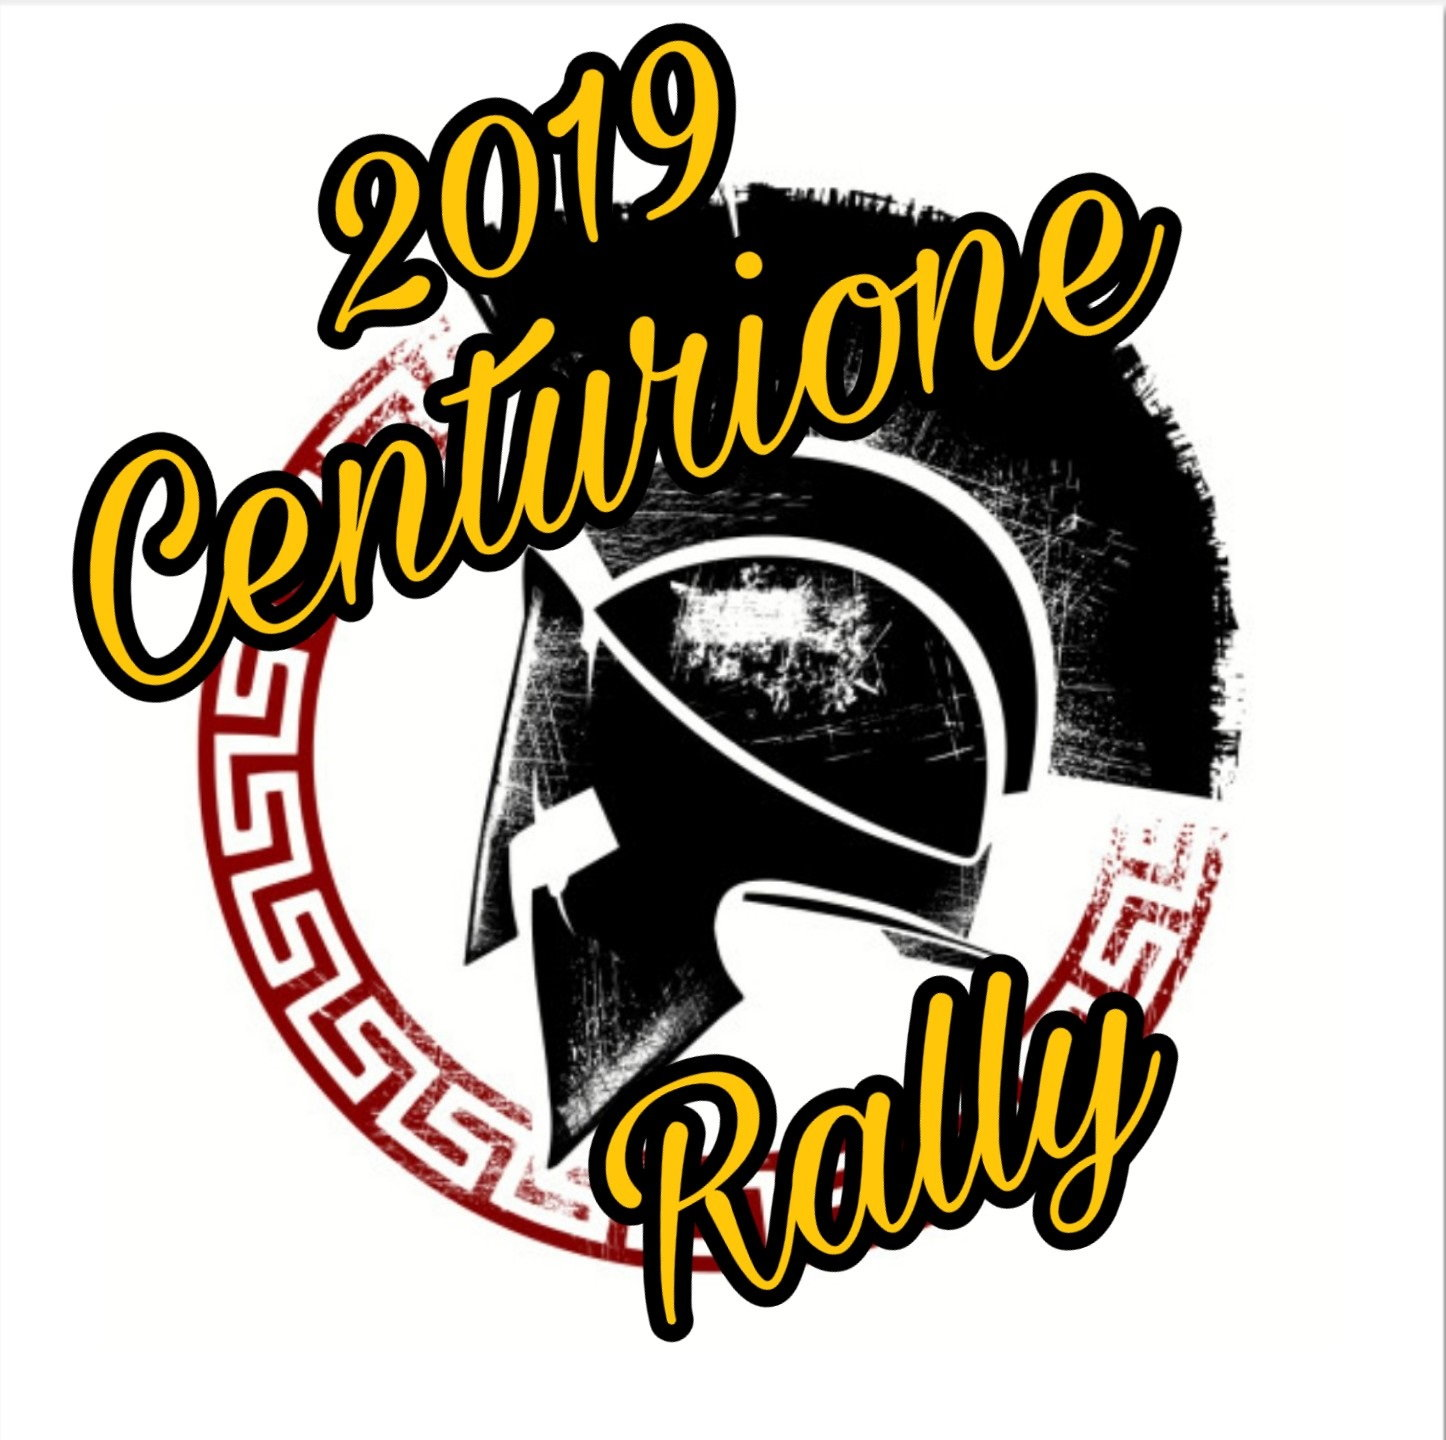 Centurione Rally; Bay Area To San Diego This Friday 4-12